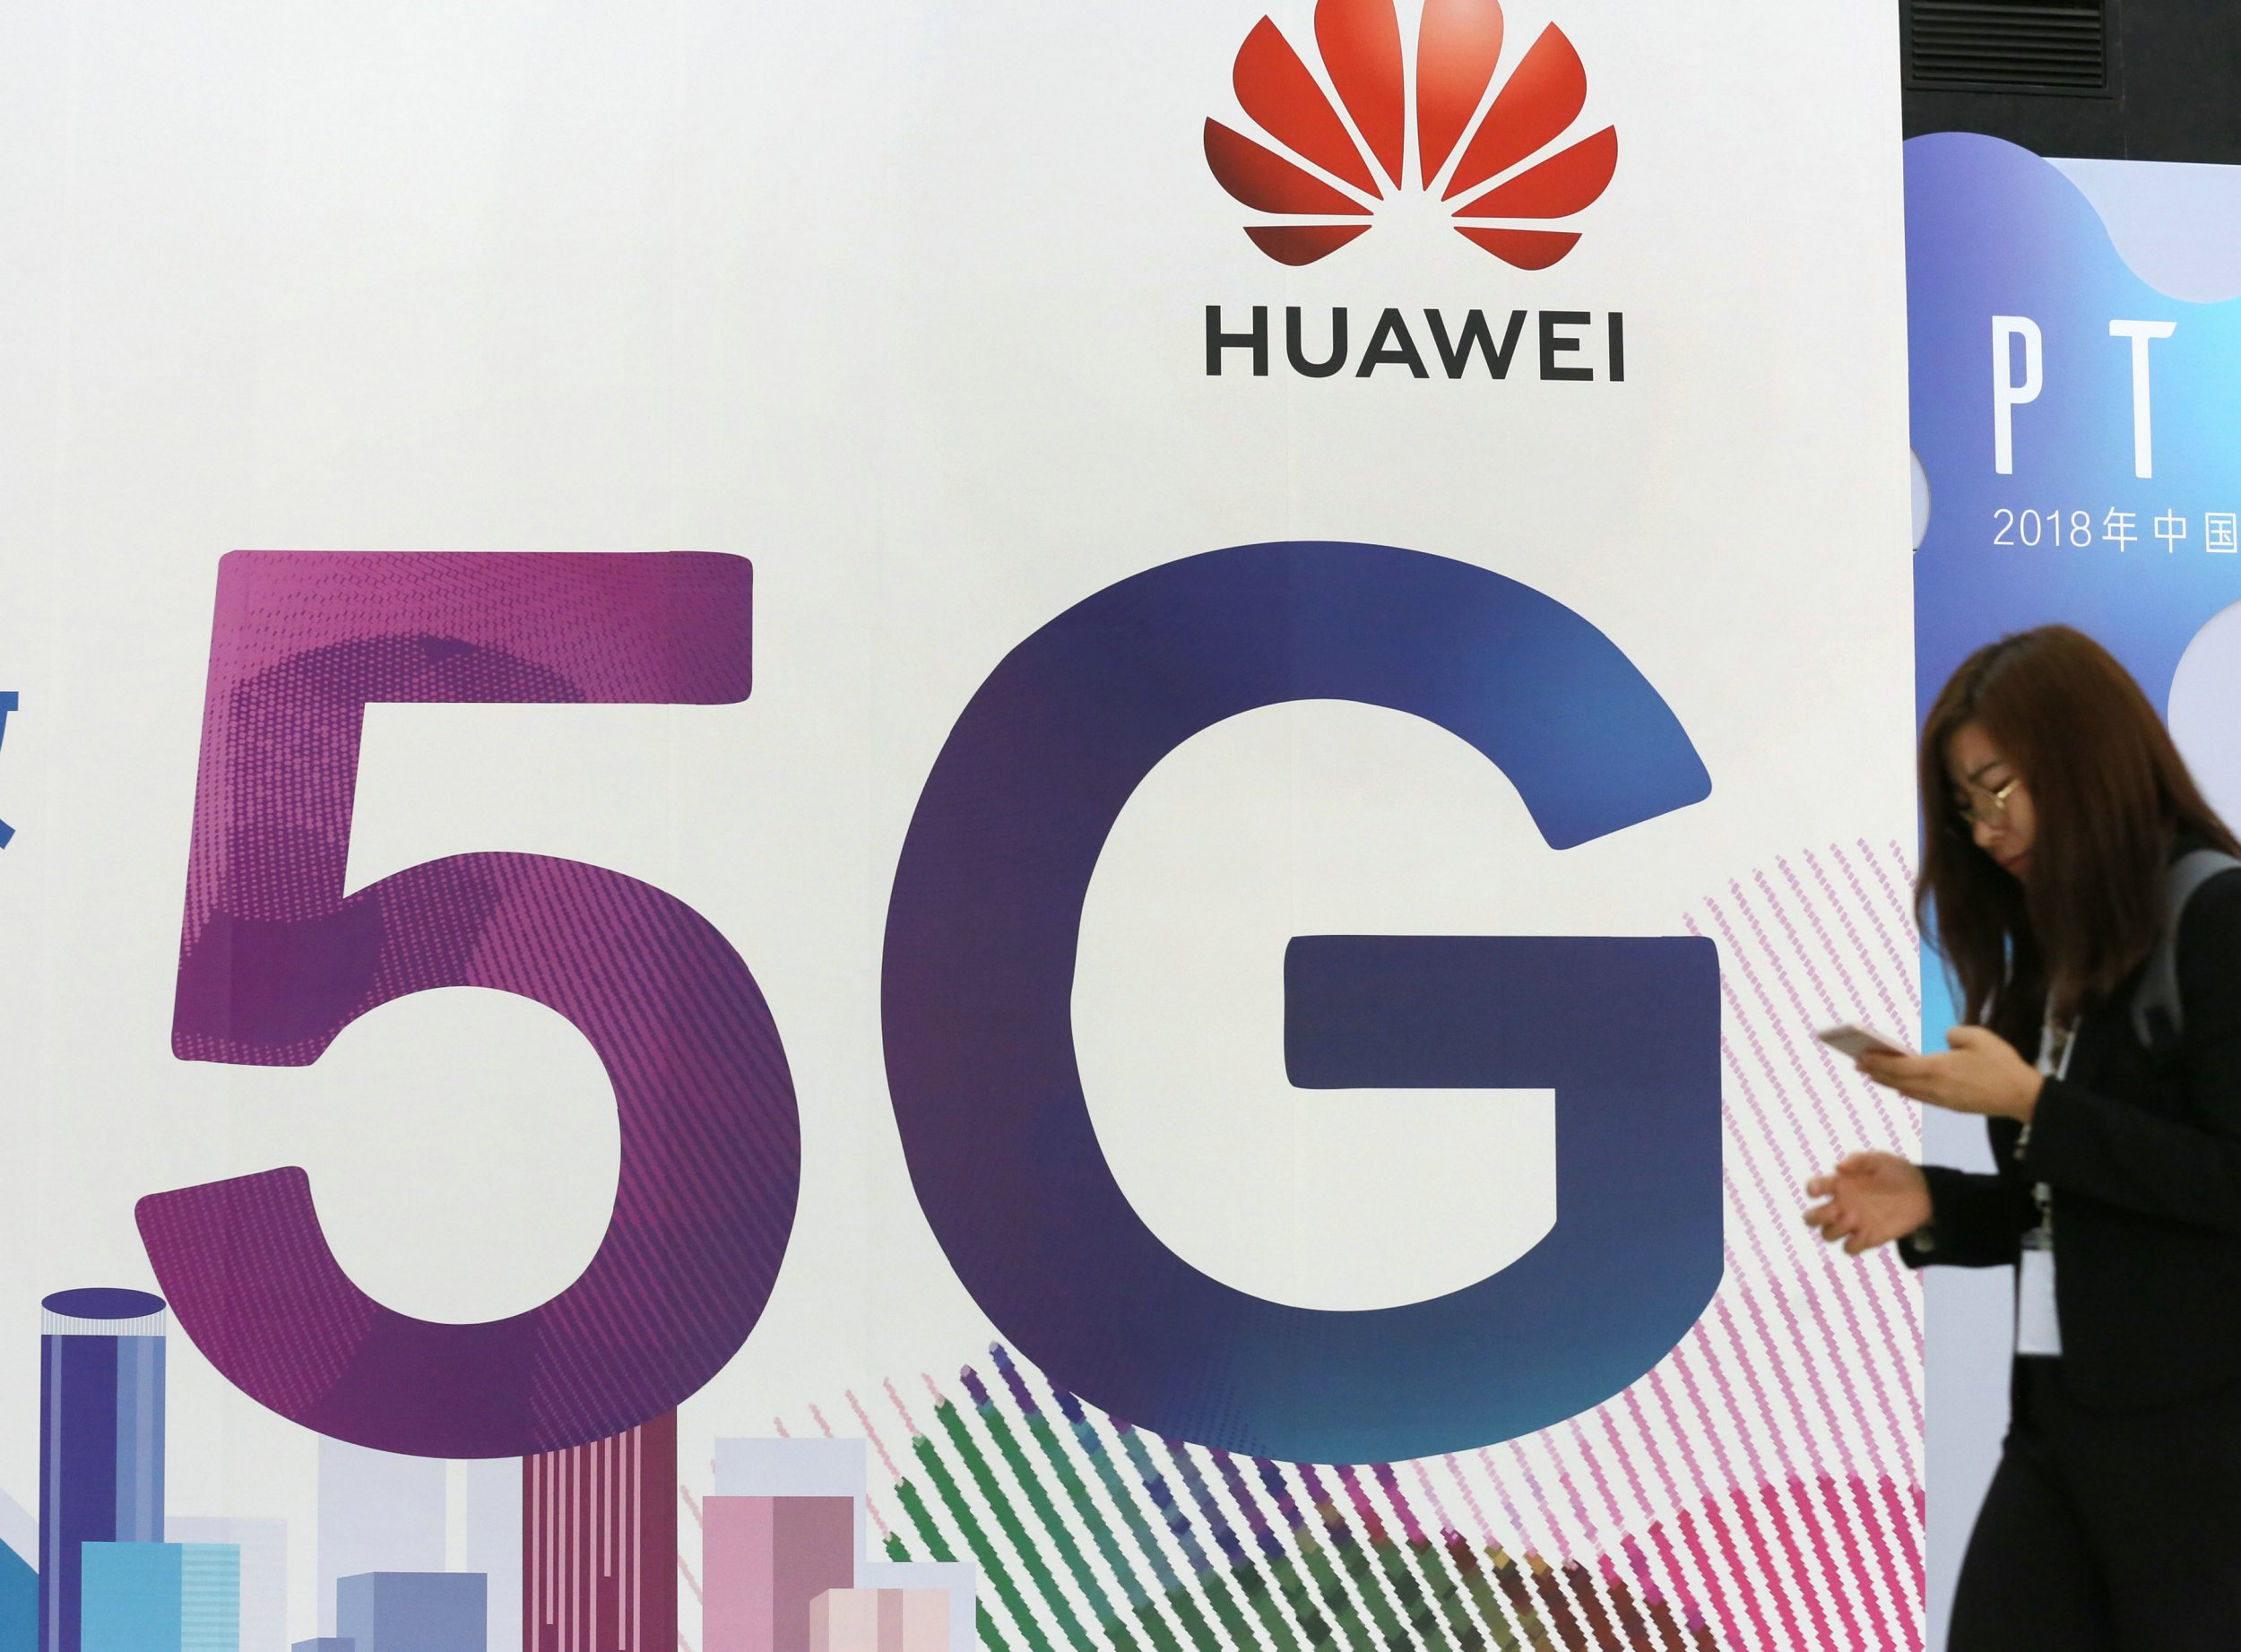 BEIJING, CHINA - SEPTEMBER 26: A woman walks past the stand of Huawei featuring 5G technology during the PT Expo China at Beijing National Convention Center on September 26, 2018 in Beijing, China. (Photo by VCG/VCG via Getty Images)